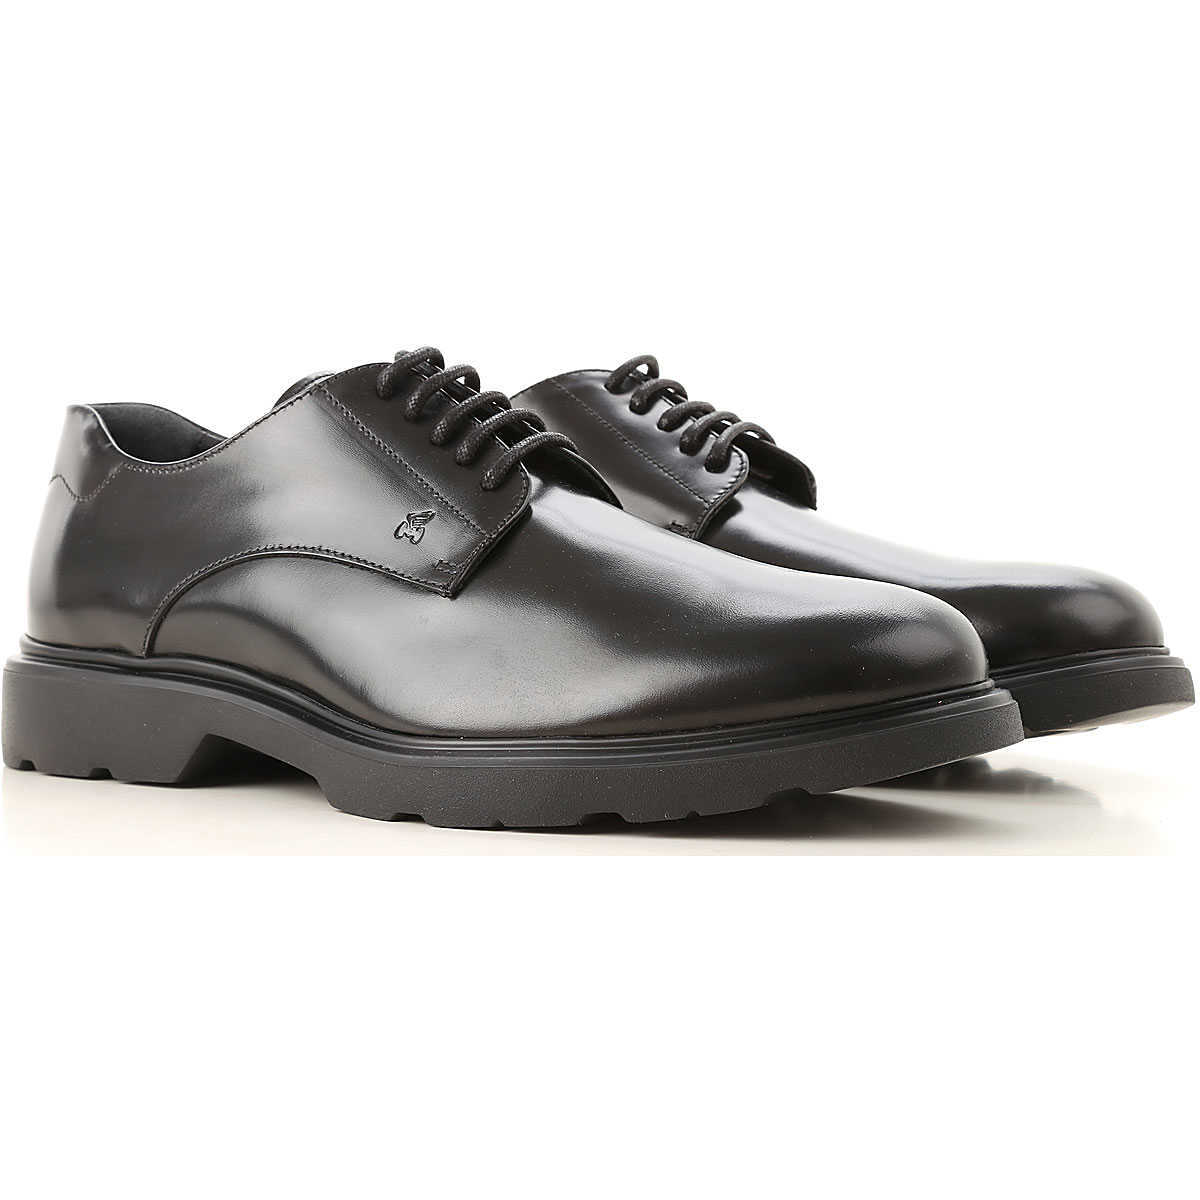 Hogan Lace Up Shoes for Men Oxfords 10 11 5.5 6 6.5 7 7.5 8 8.5 9 9.5 Derbies and Brogues UK - GOOFASH